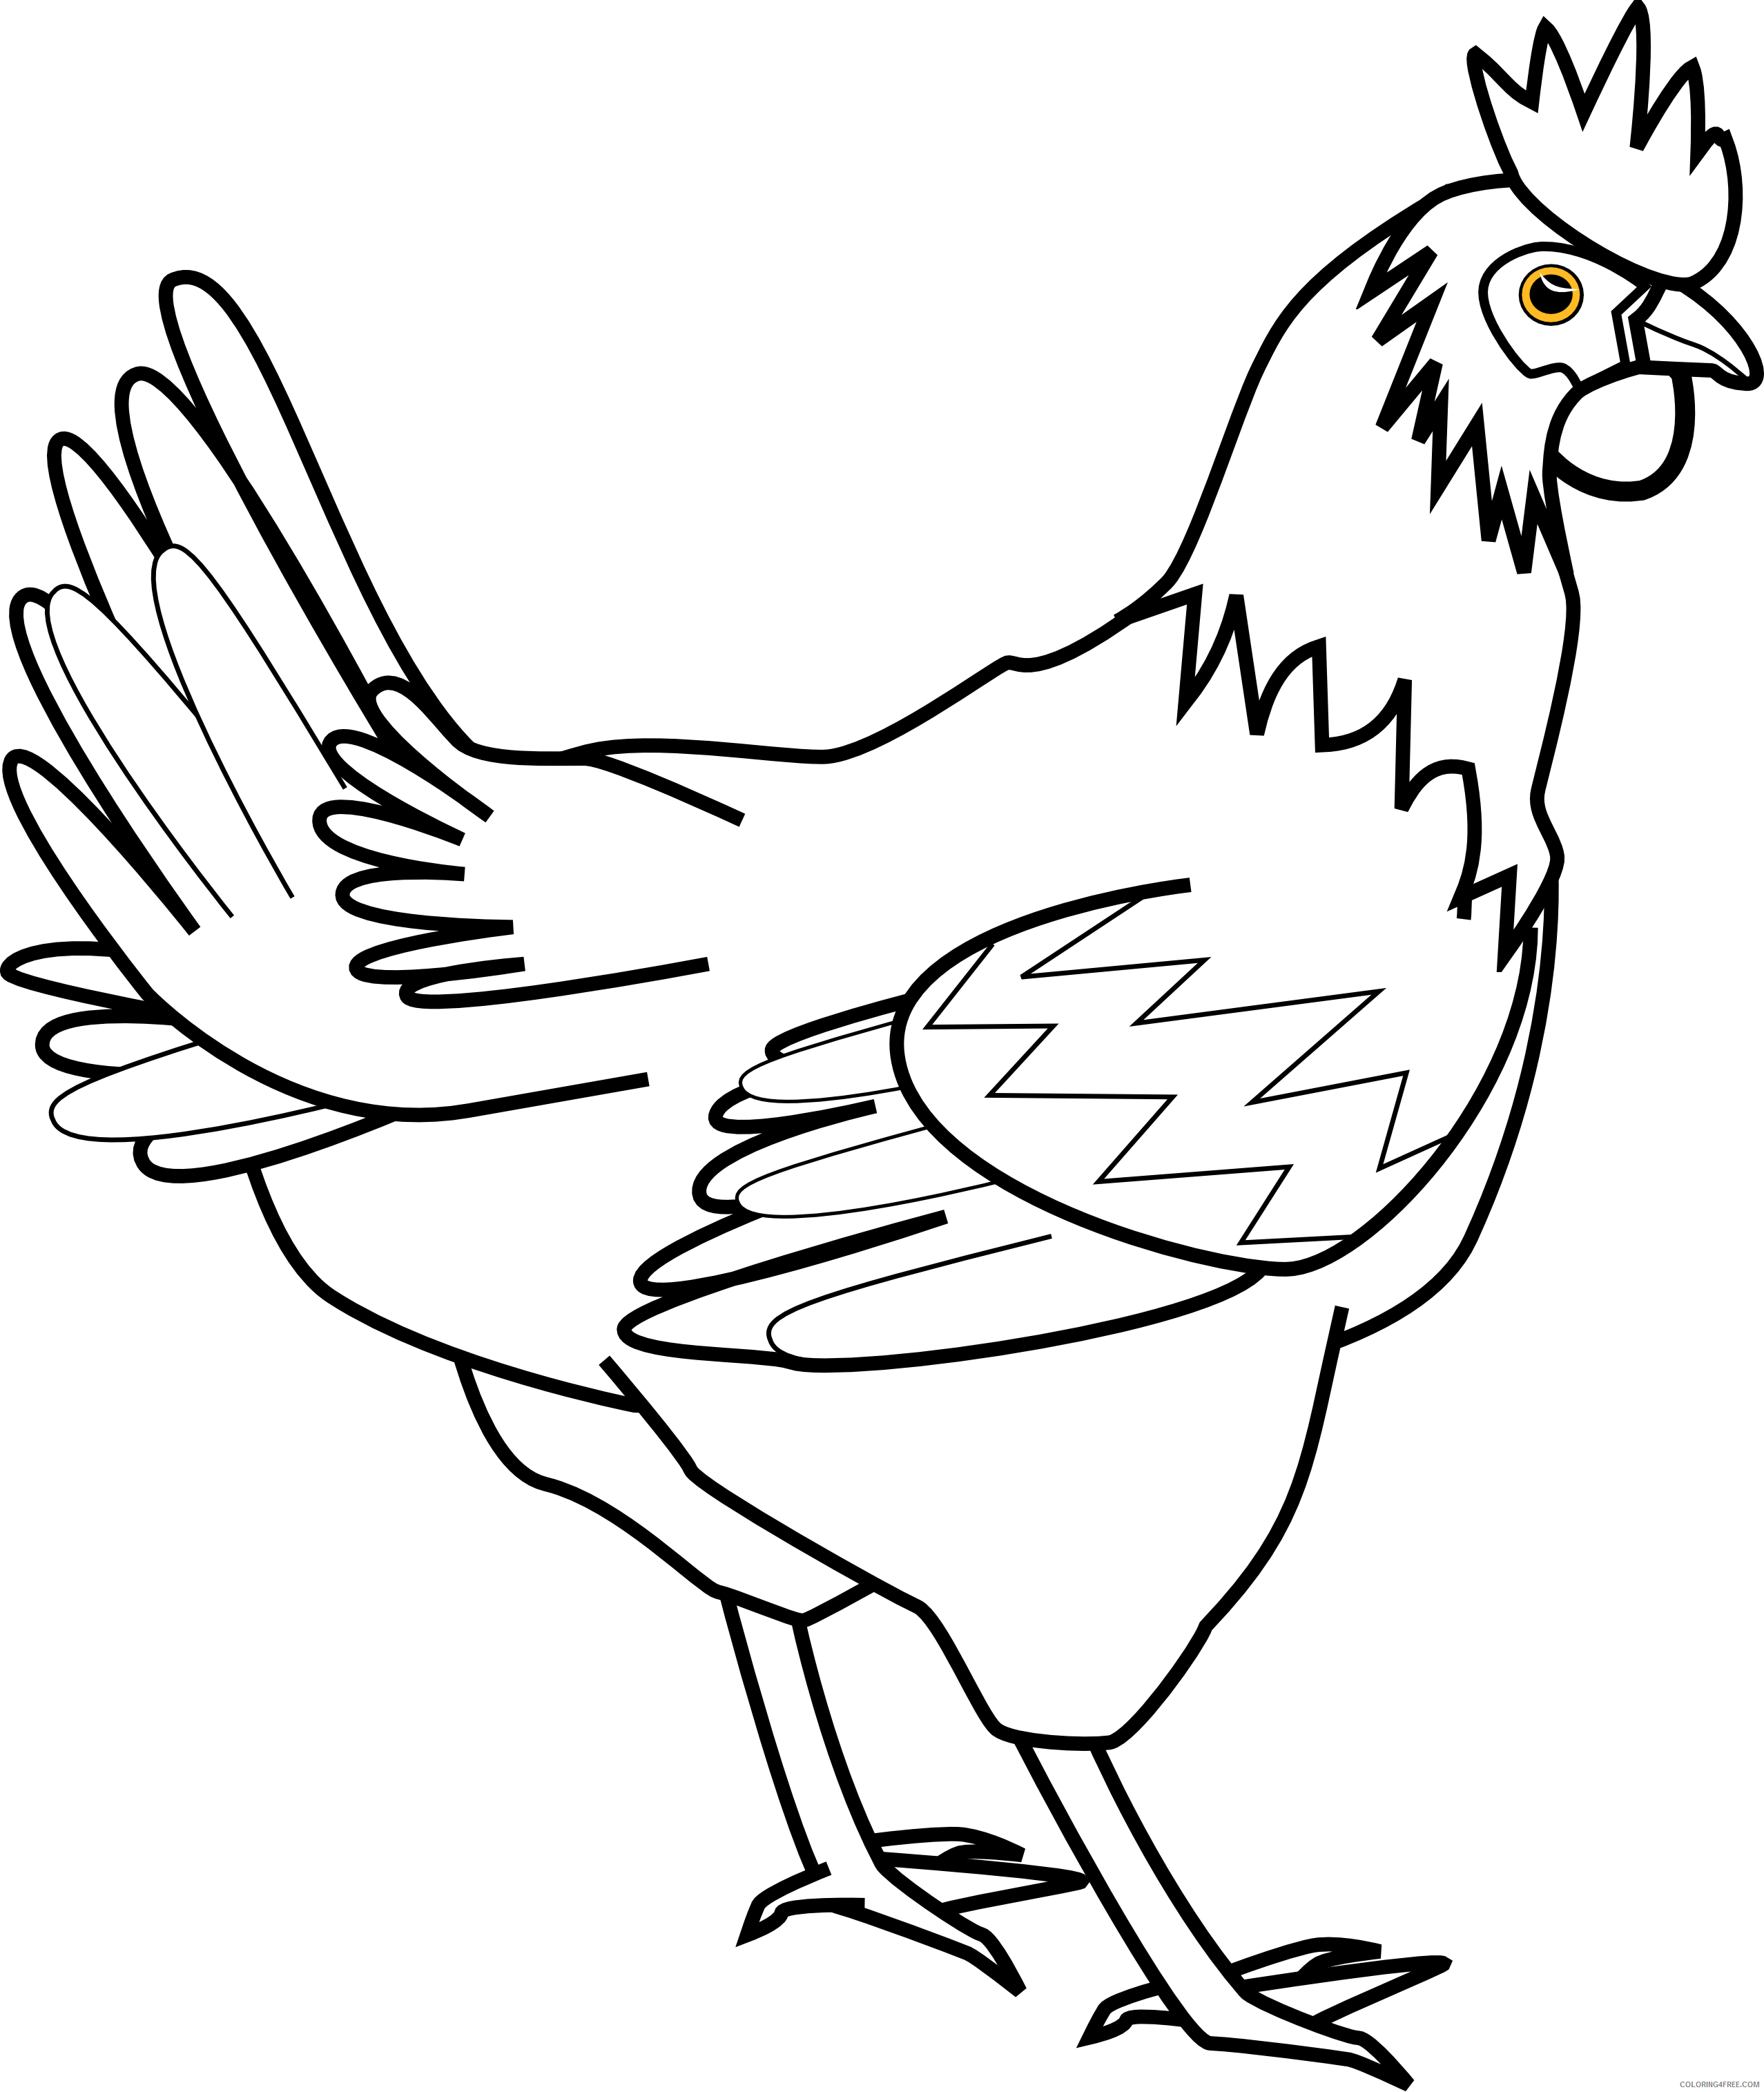 Black and White Chicken Coloring Pages Chicken clipart Printable Coloring4free